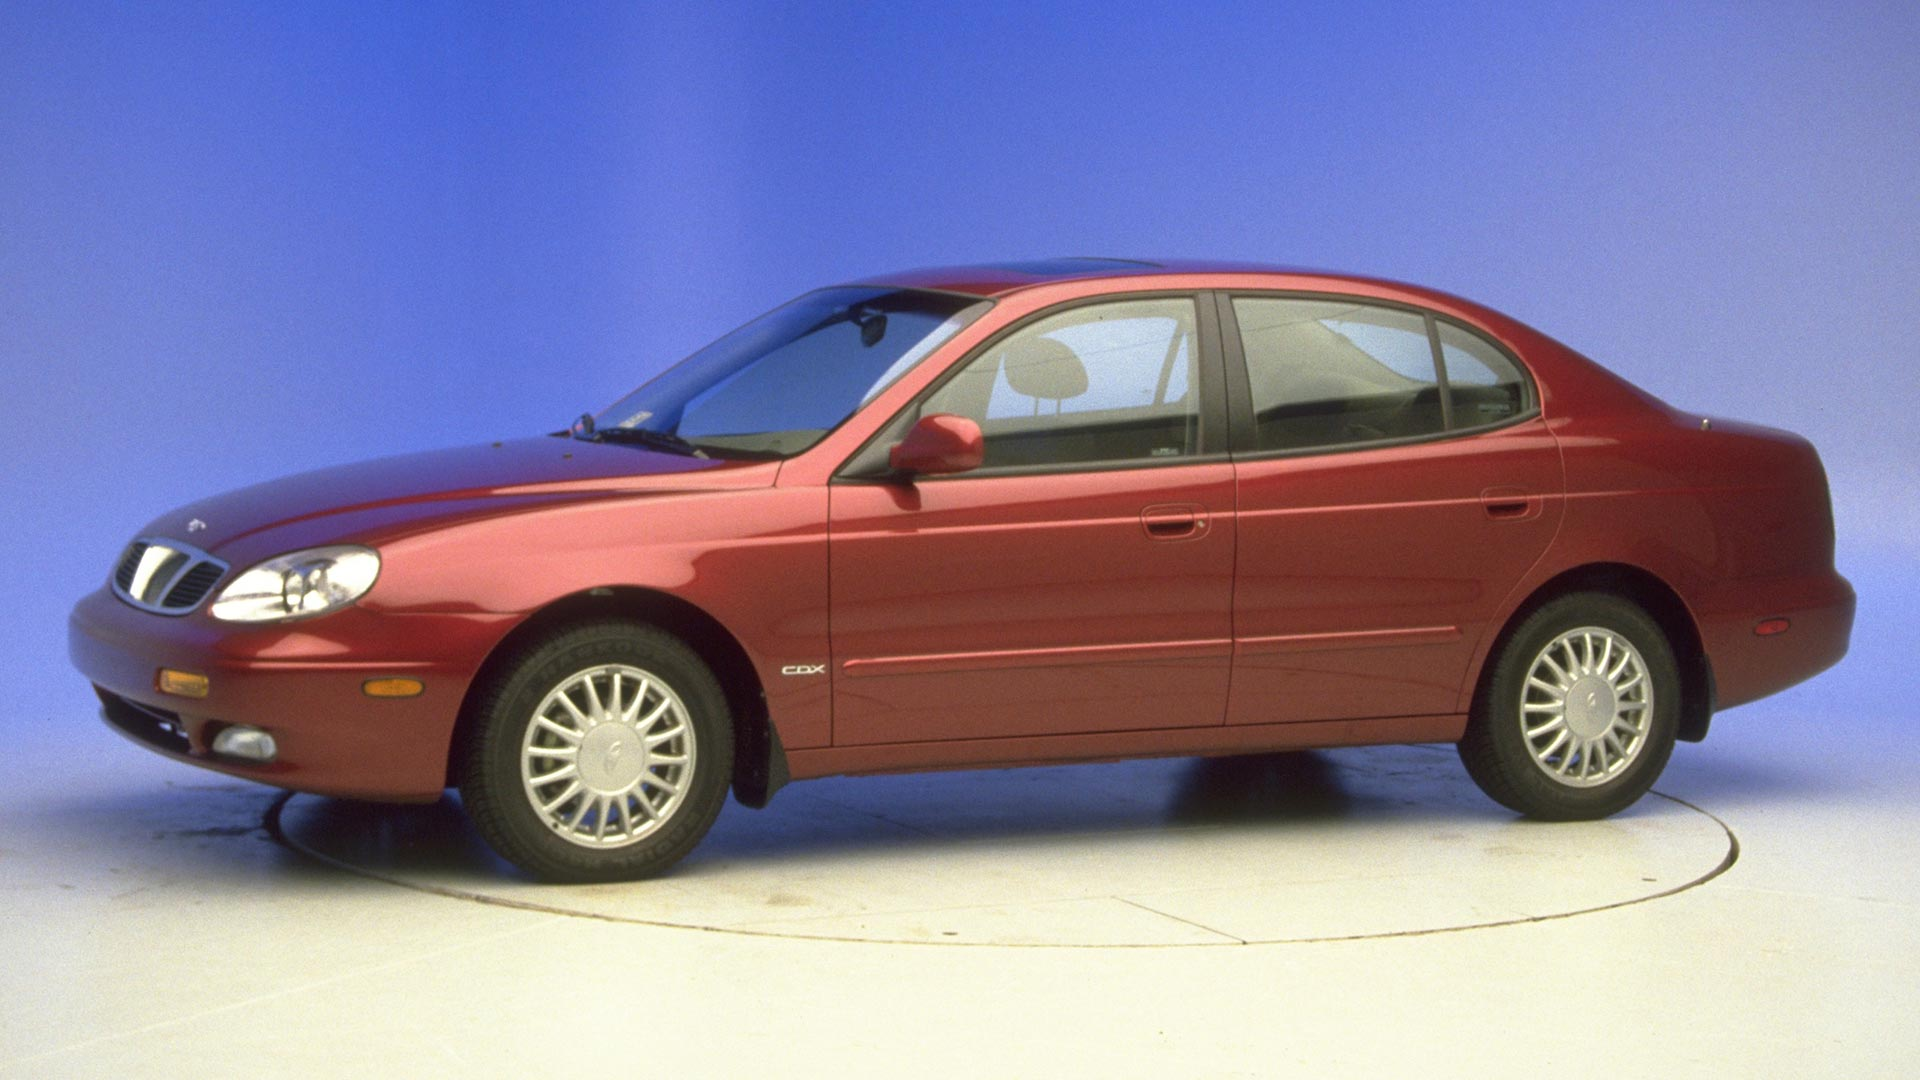 2001 Daewoo Leganza 4-door sedan